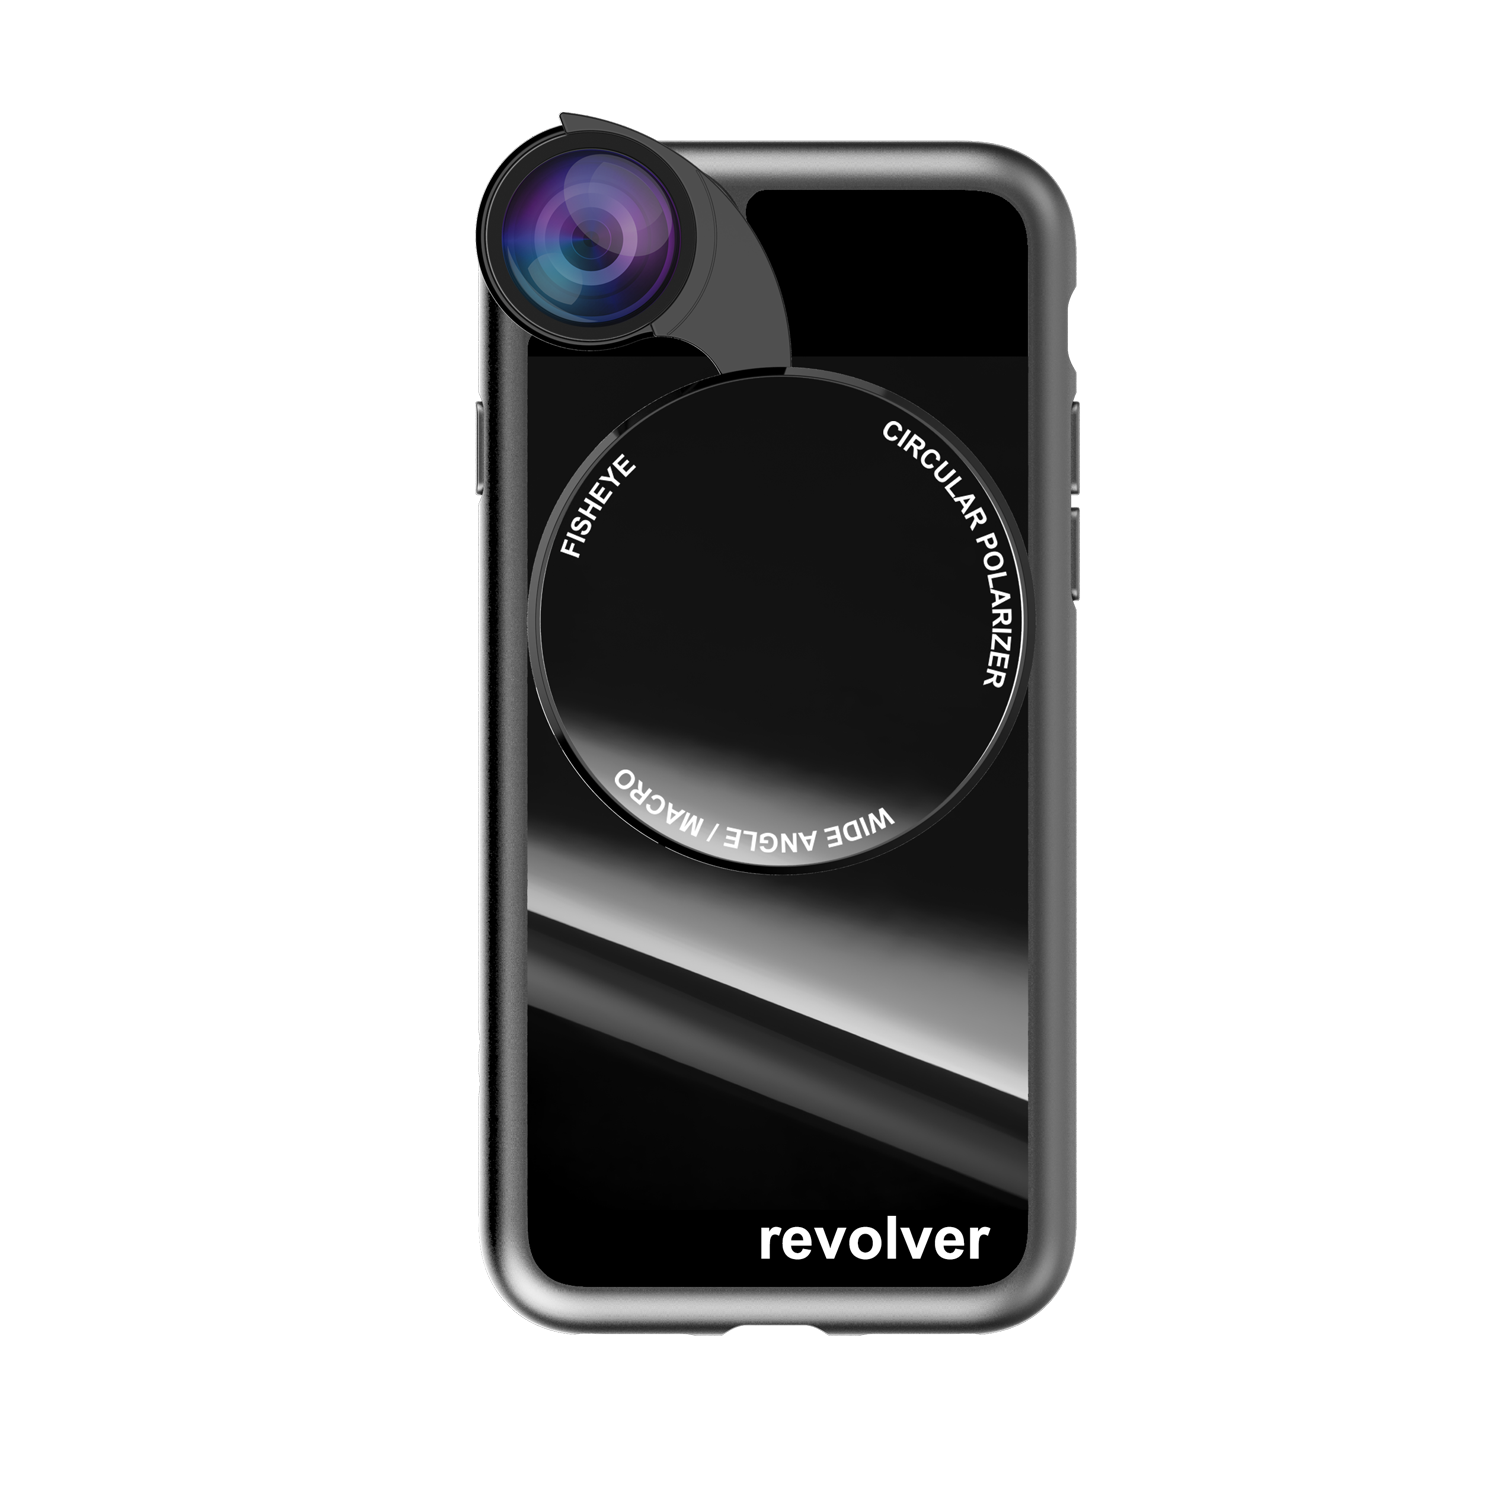 ZTYLUS ( IPHONE 7 / 8 ) 4 in 1 - REVOLVER M SERIES LENS KIT